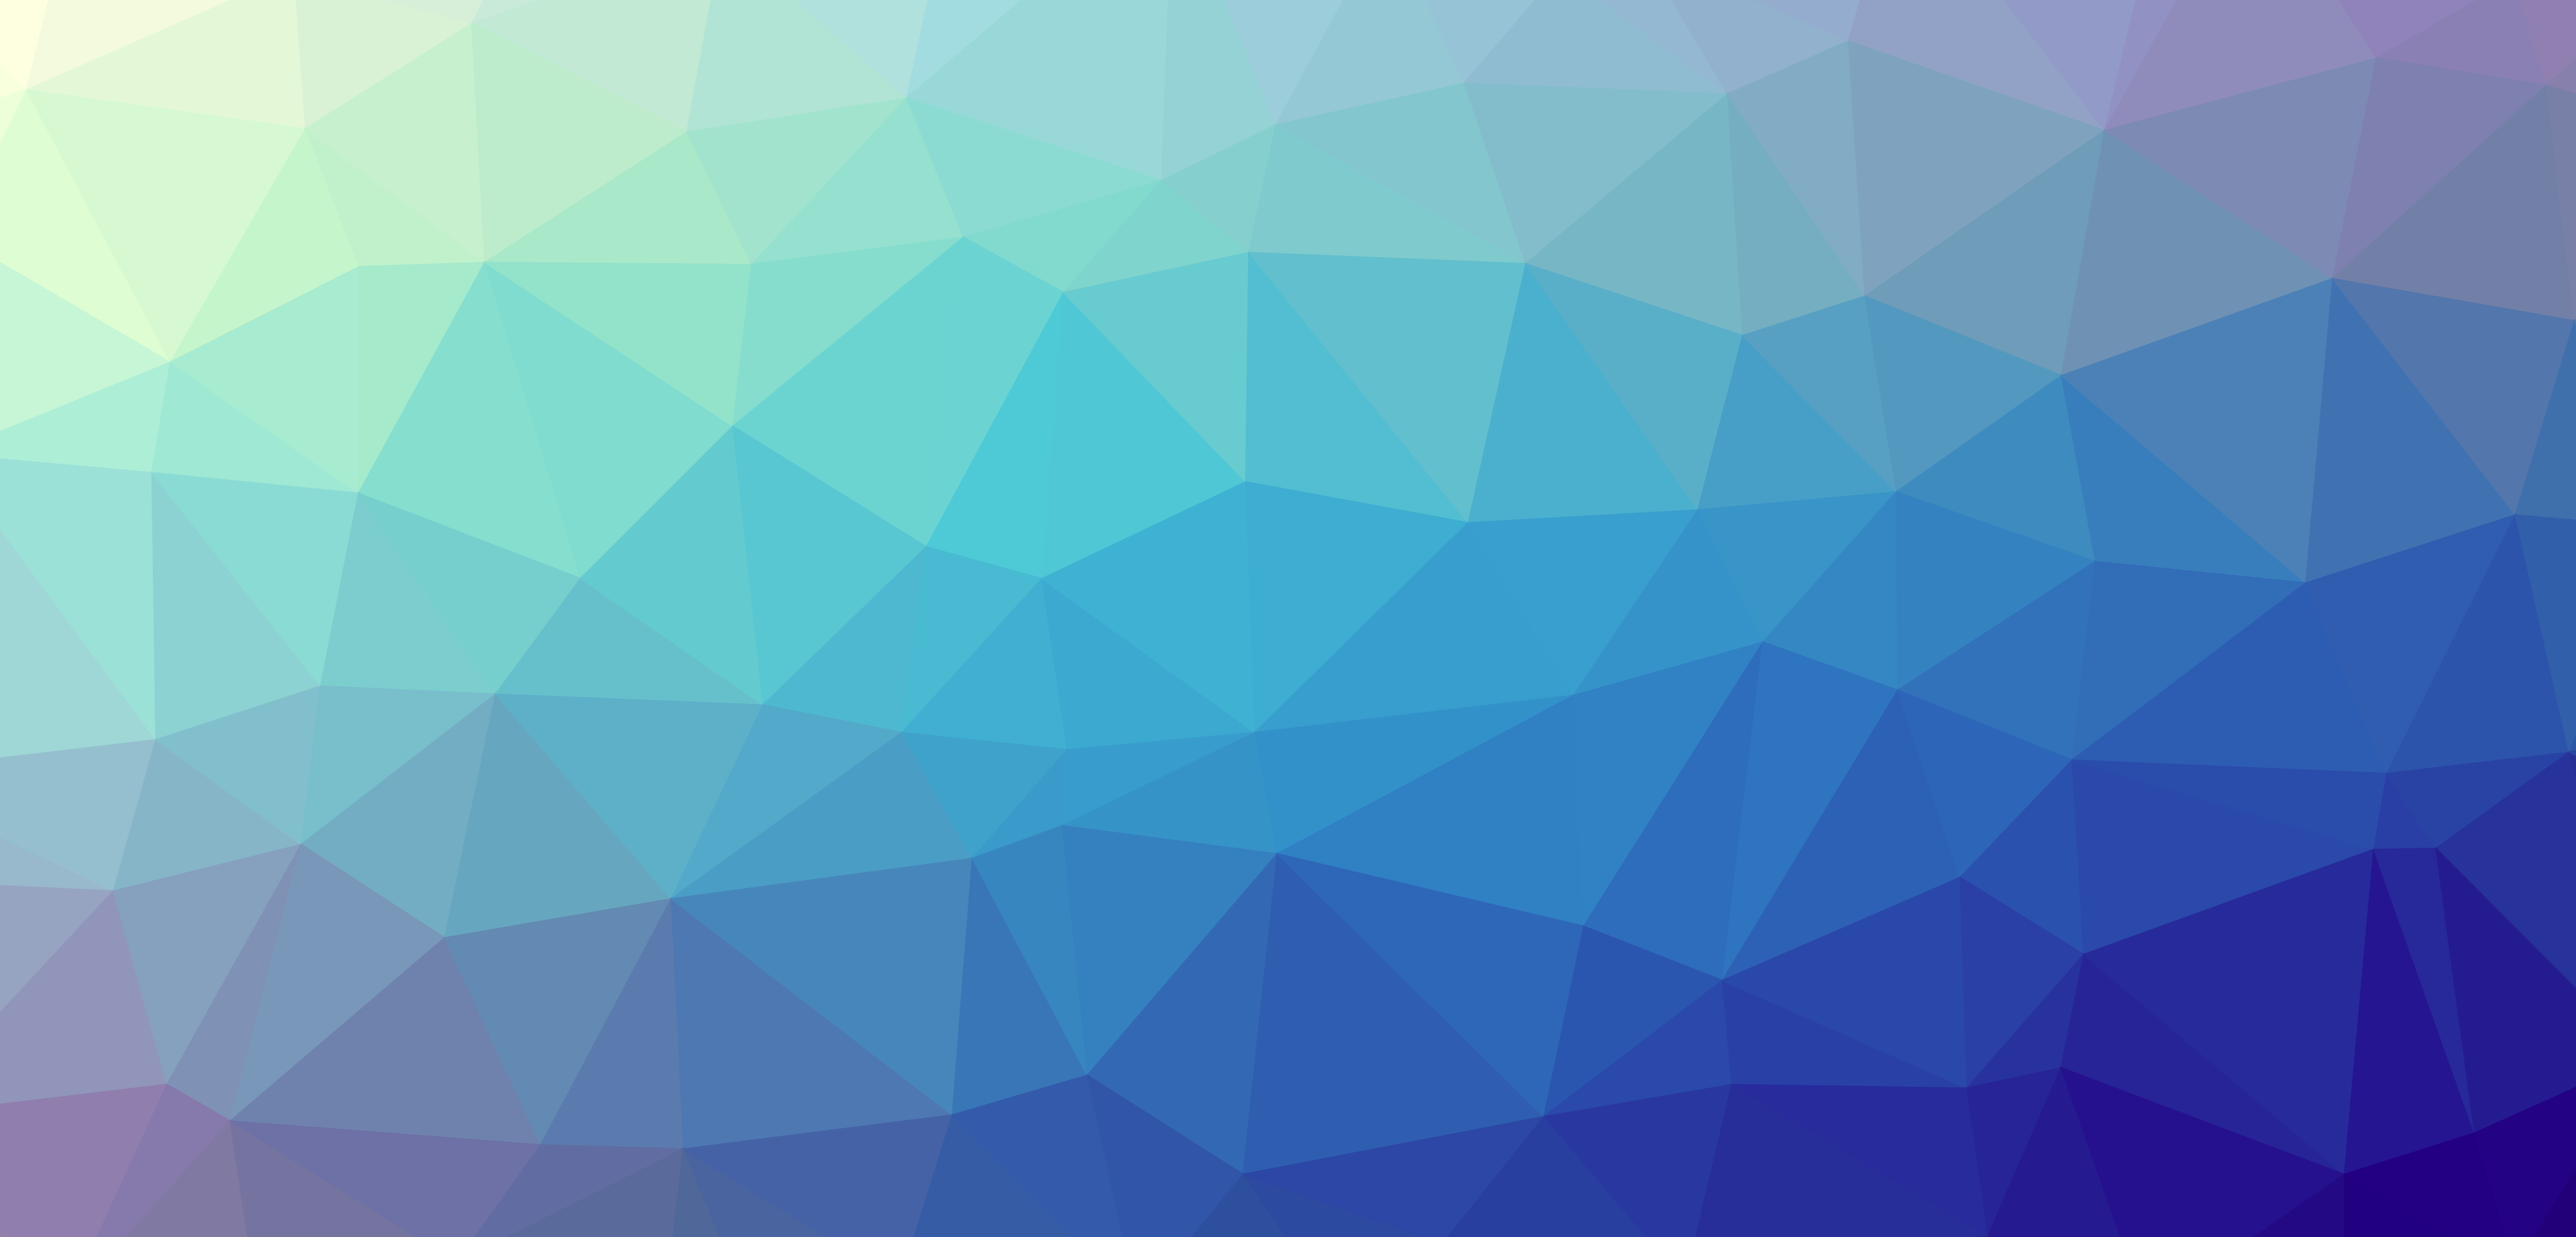 triangle-background-17.png 4,266×2,049 pixels | Canvas Images ...